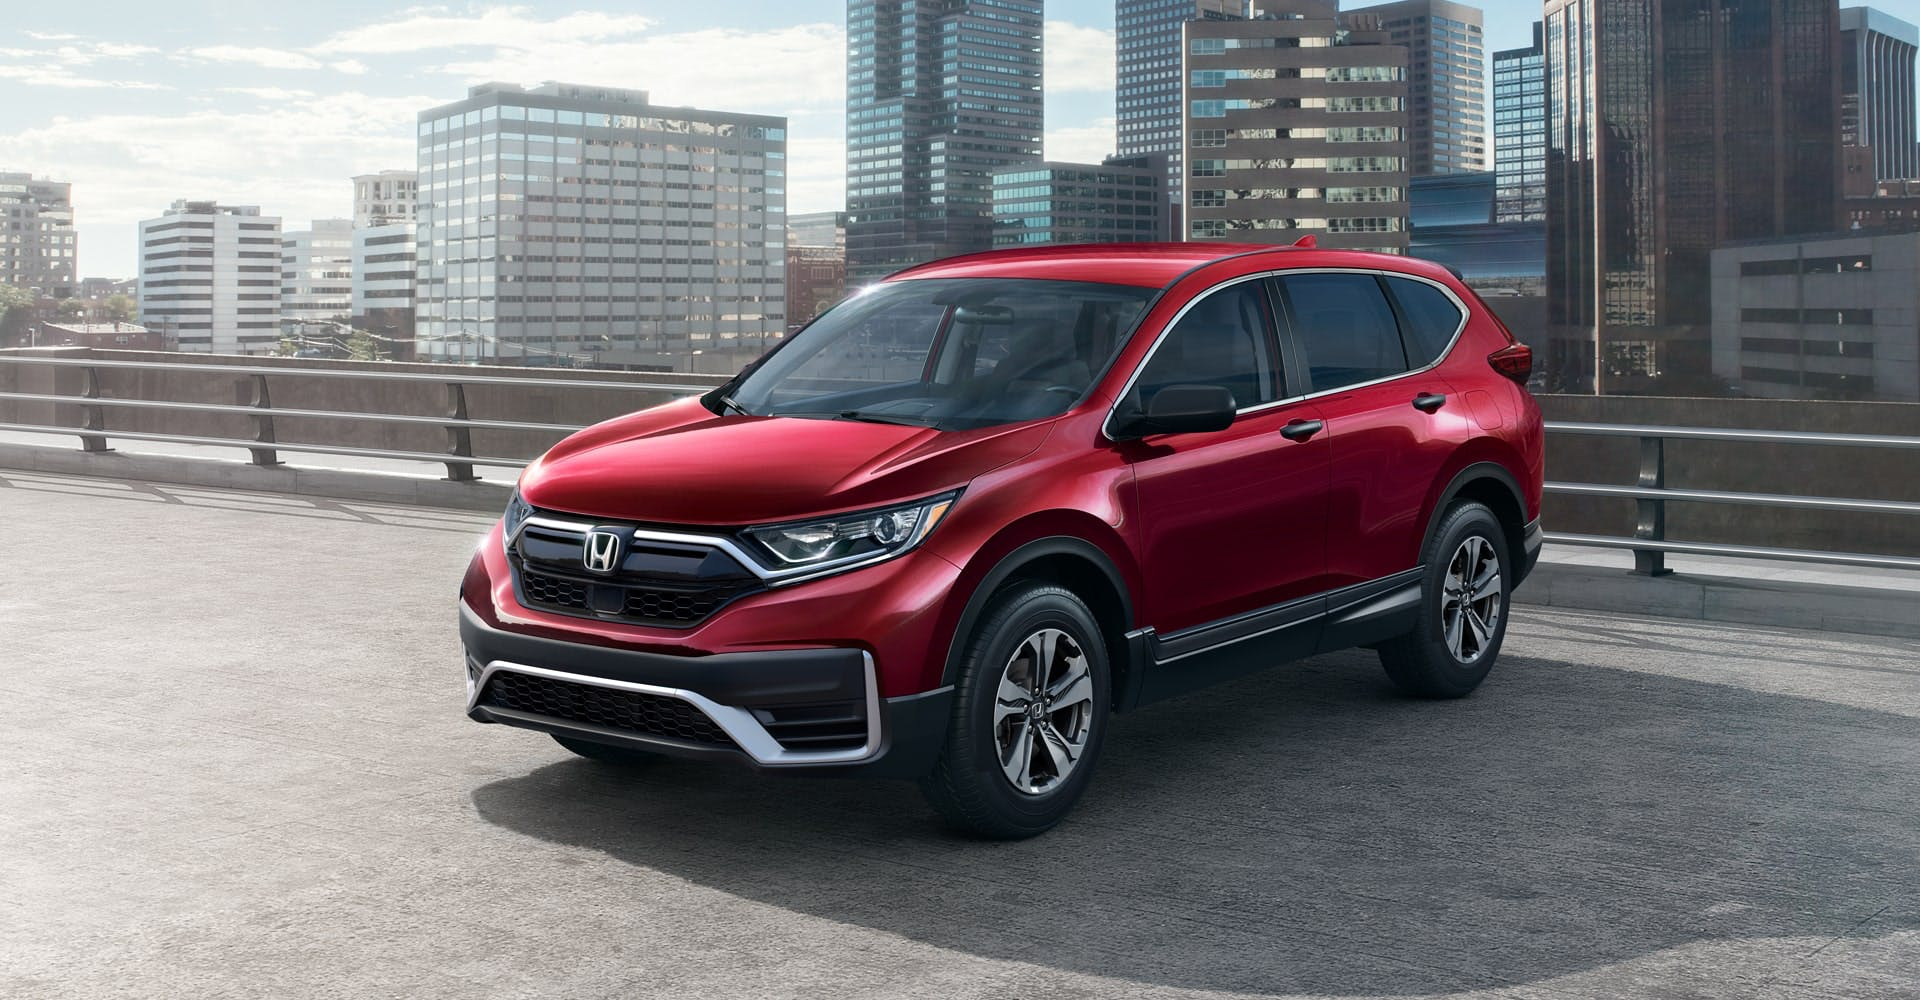 red honda cr-v - front view